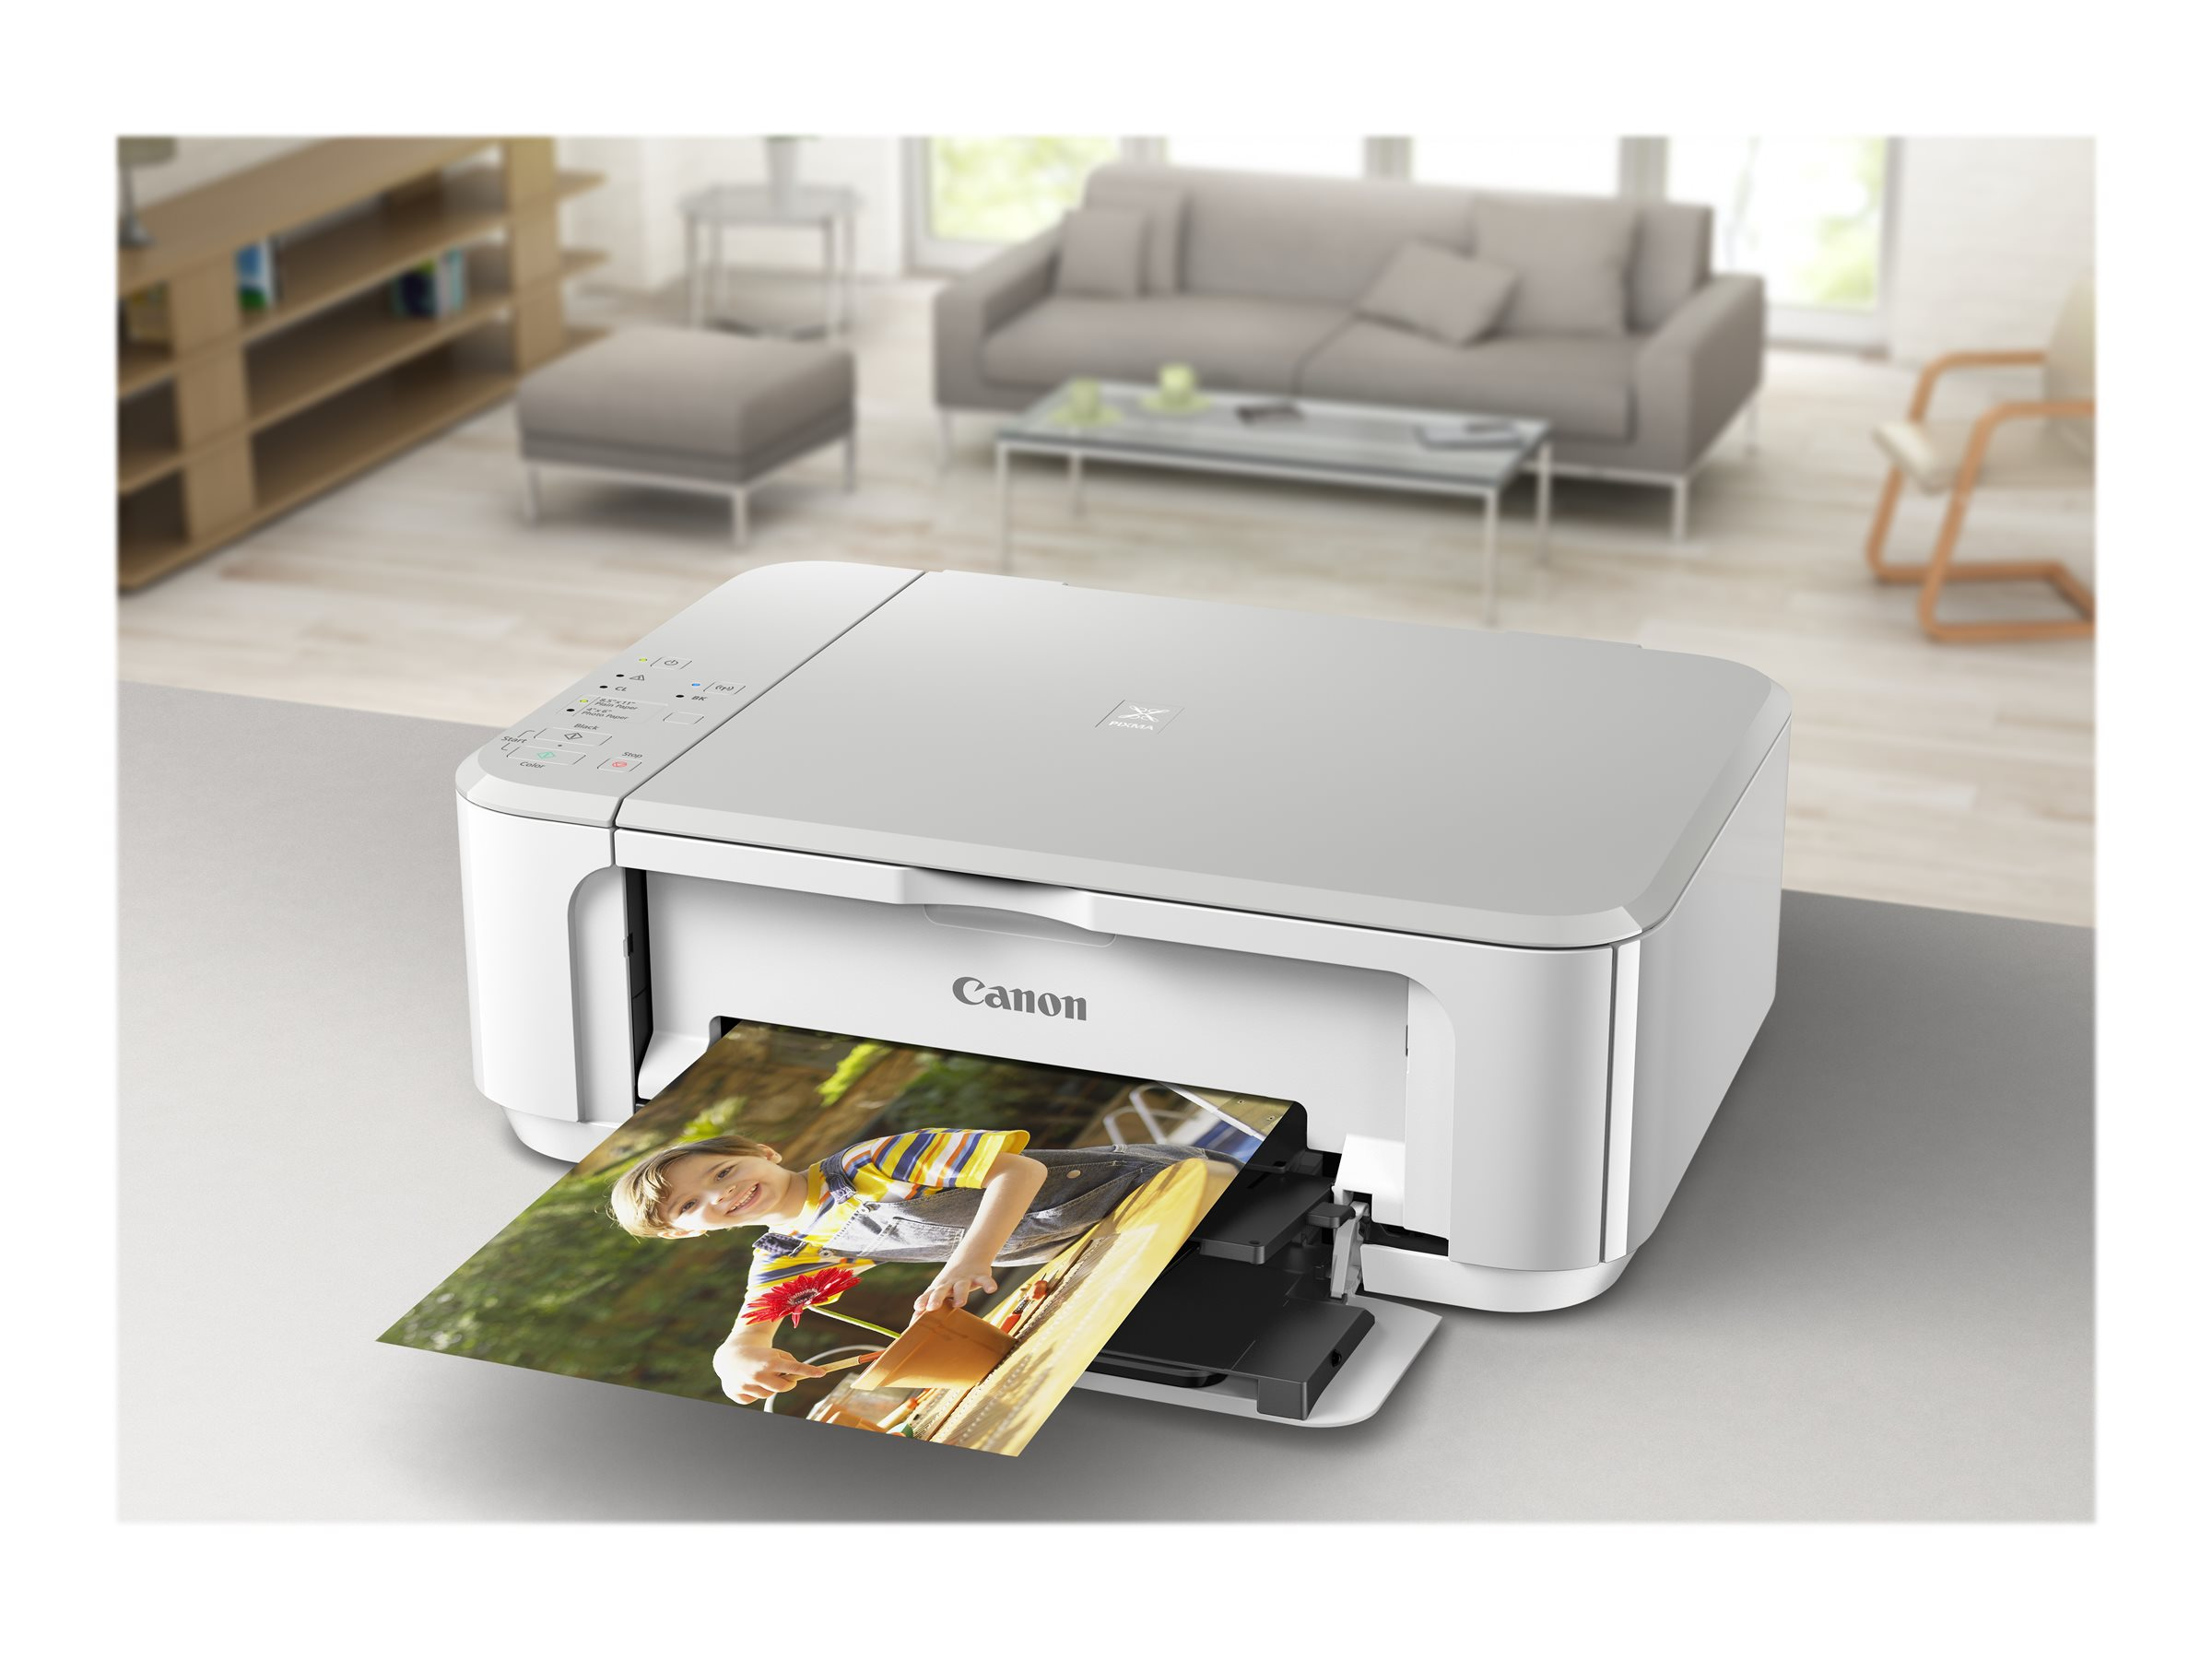 Canon PIXMA MG3650 - Multifunktionsdrucker - Farbe - Tintenstrahl - A4 (210 x 297 mm)